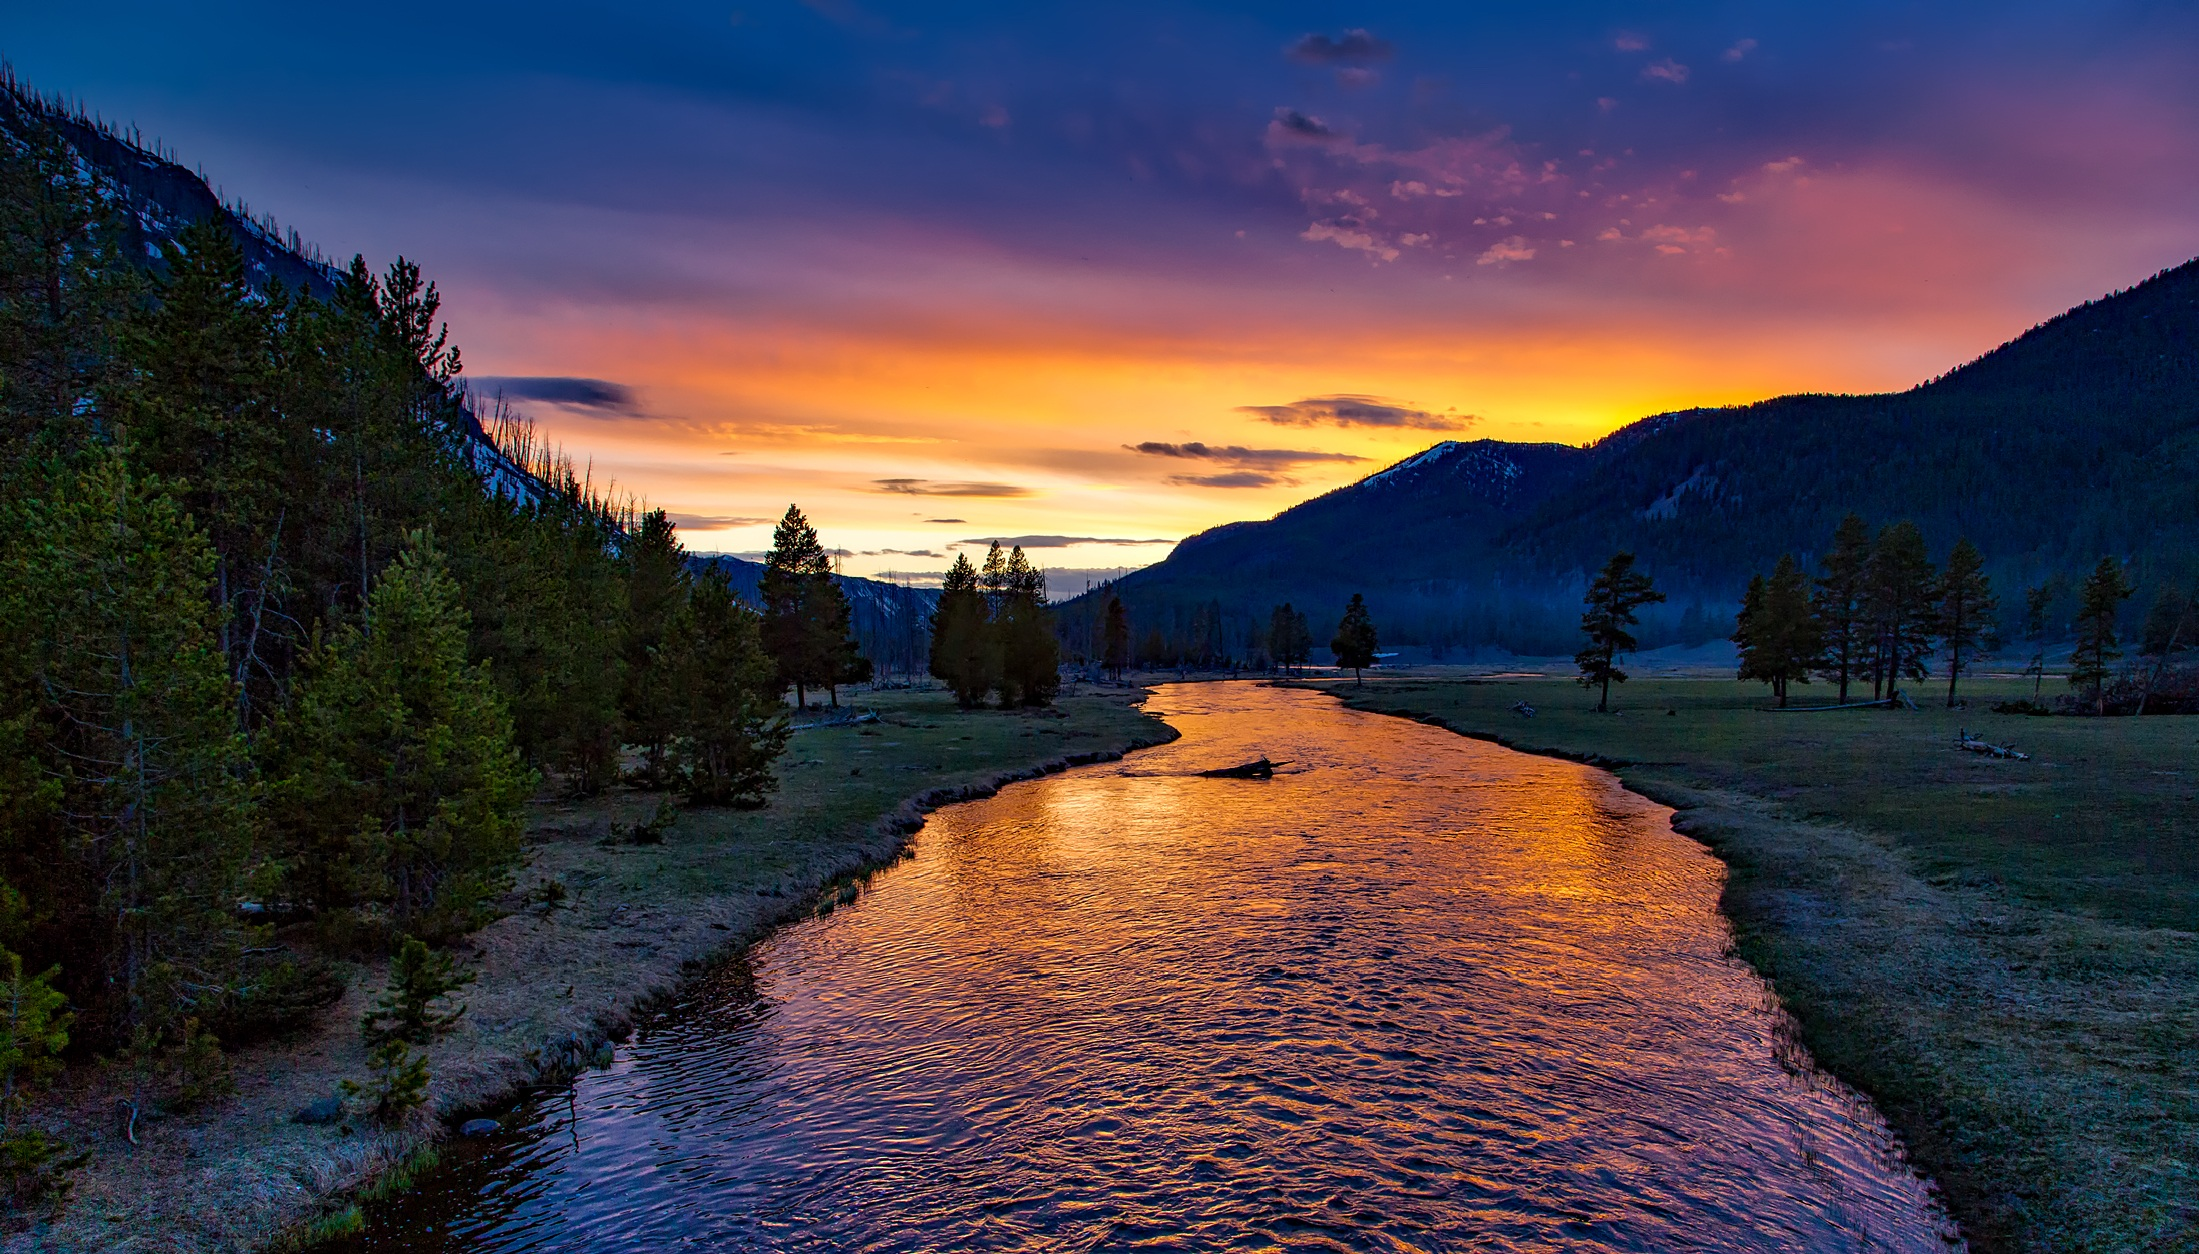 Yellowstone National Park and the Madison River HD Wallpaper 2199x1254